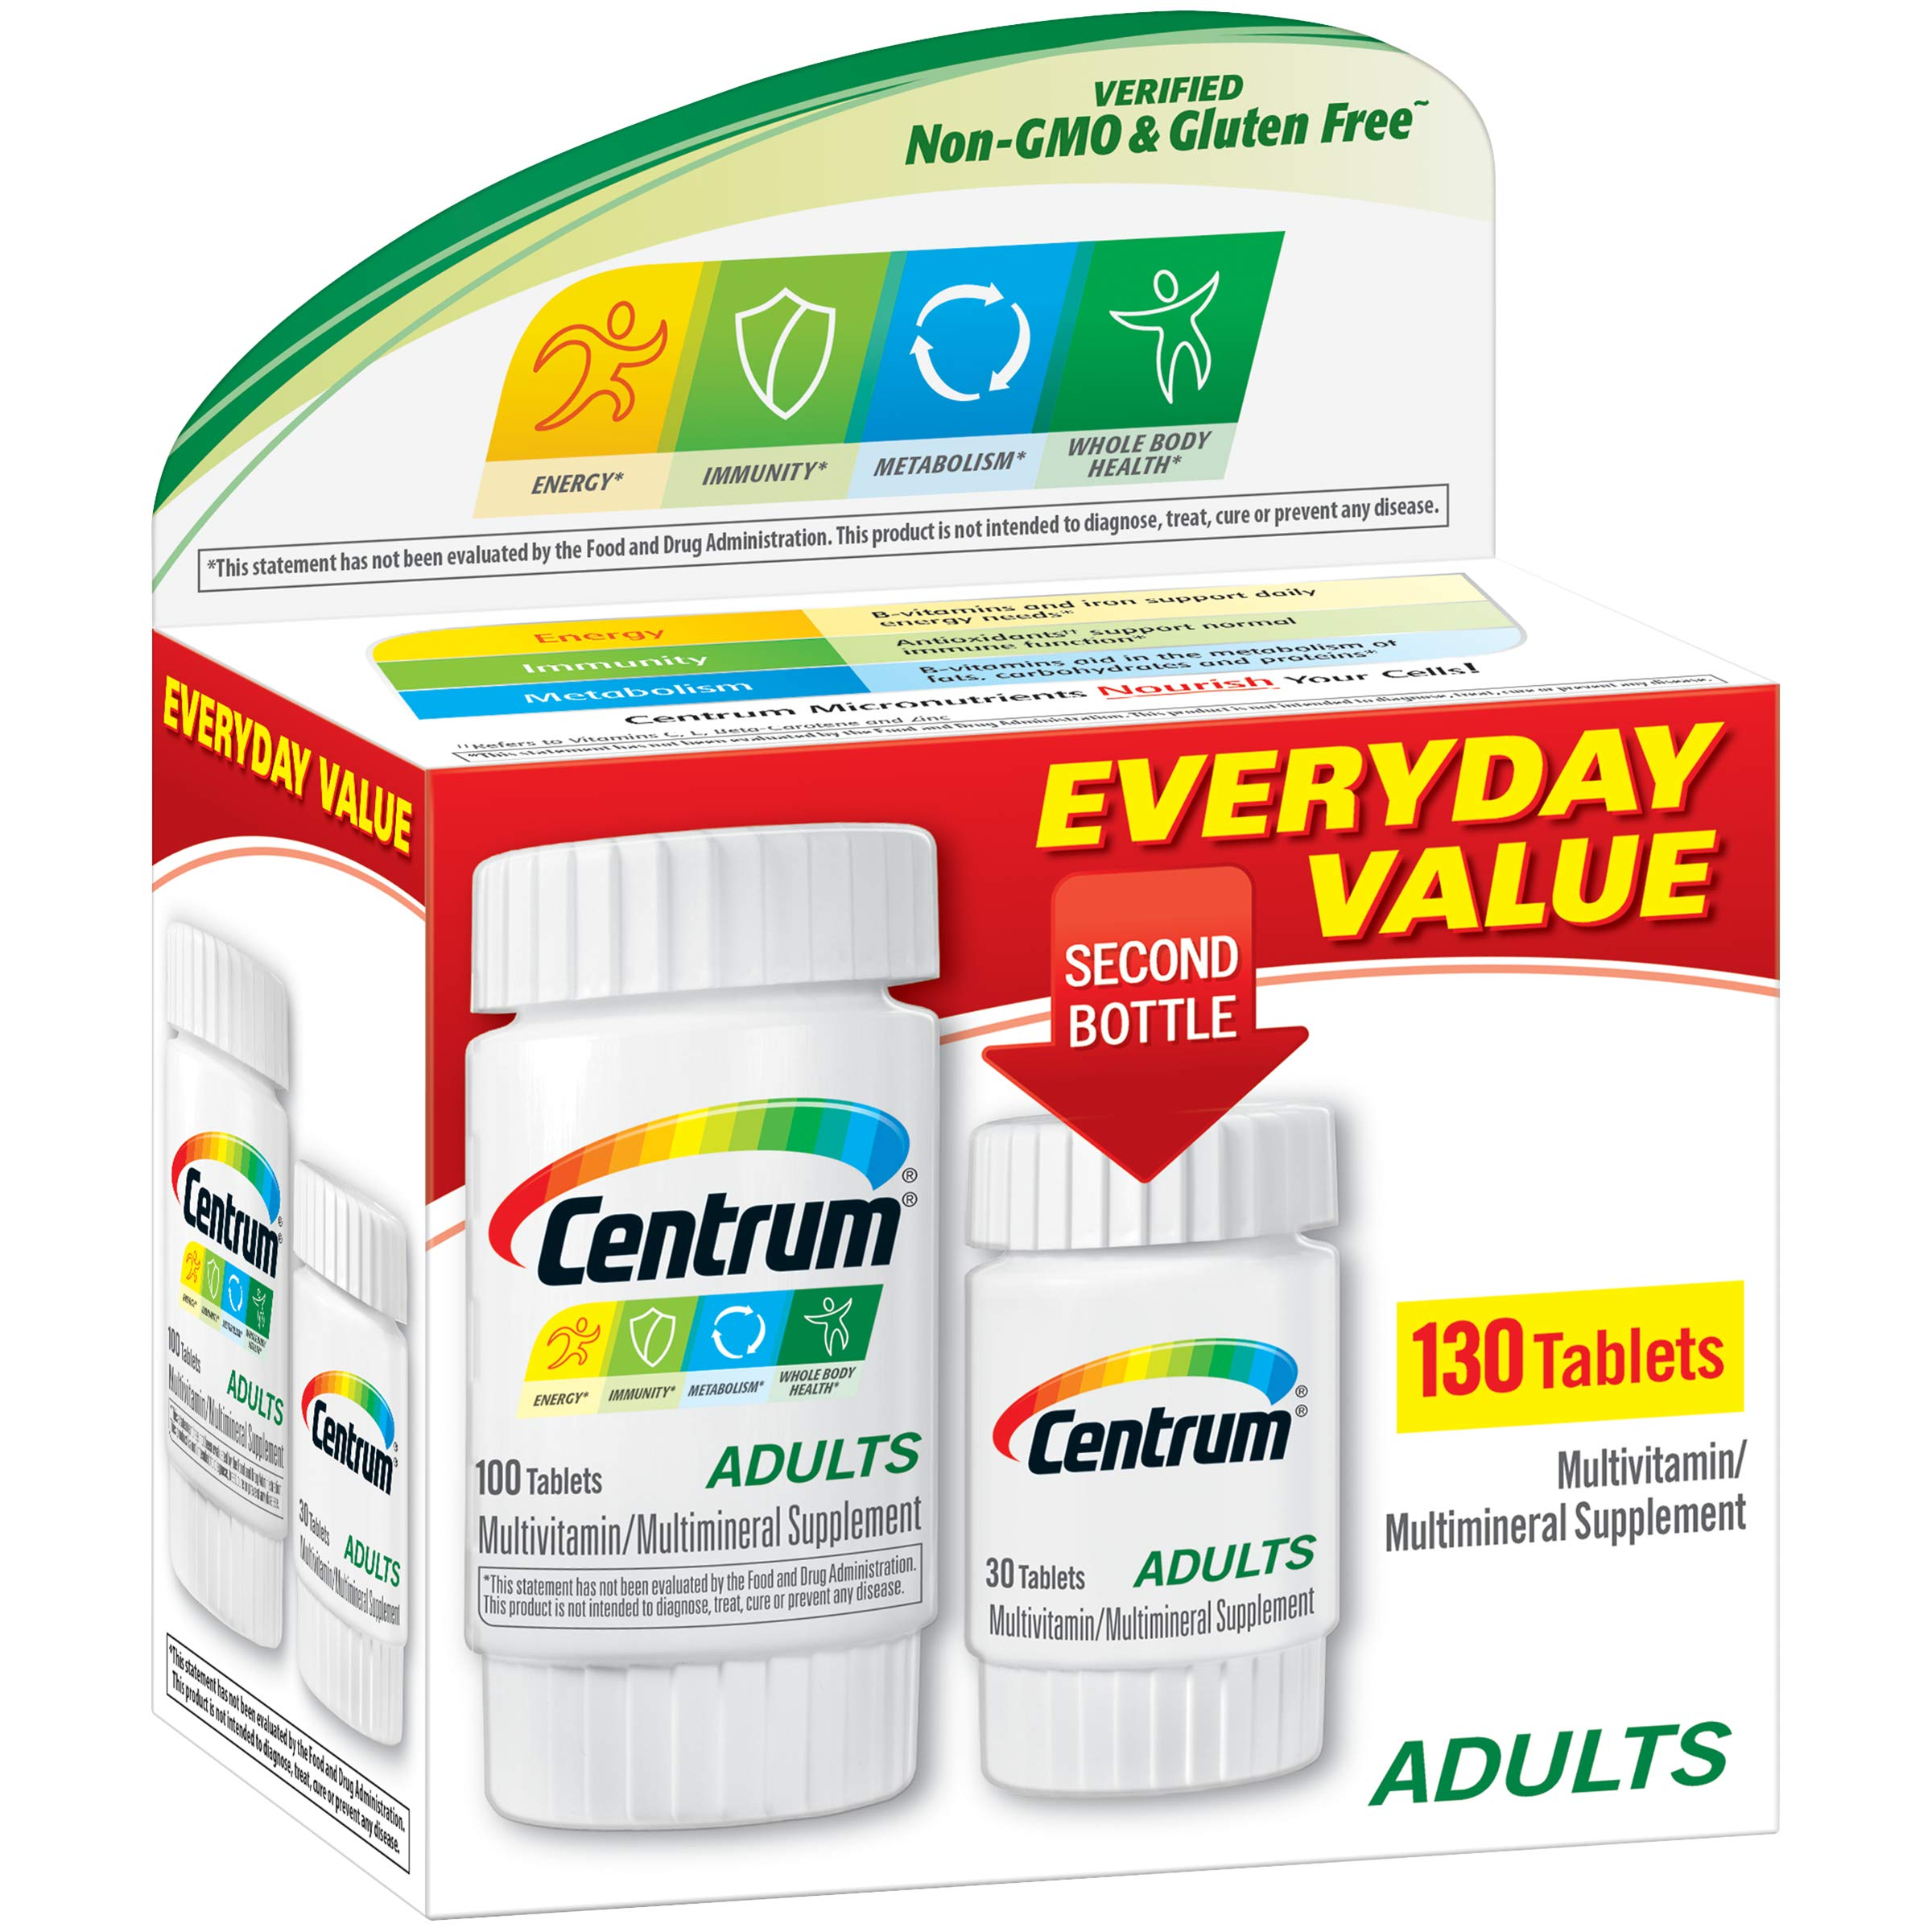 Centrum Adult Multivitamin/Multimineral Supplement with Antioxidants, Zinc and B Vitamins - 130 Count